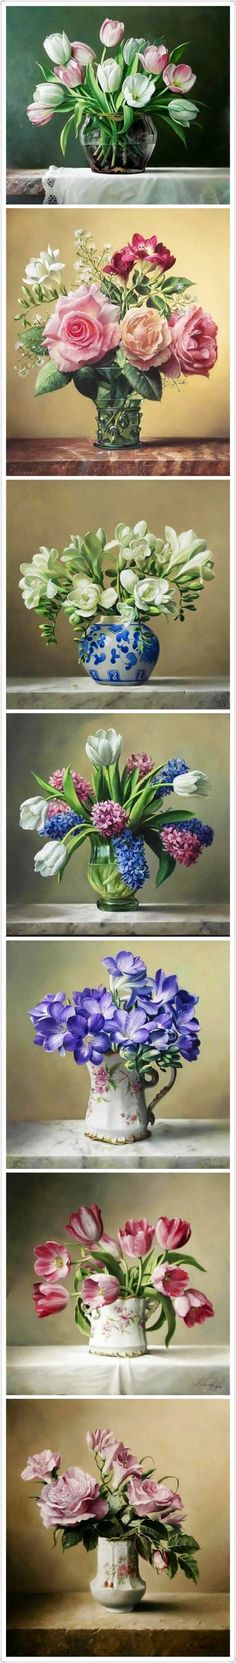 By Pieter Wageman, multiple paintings/still life...inspiration for Wall Art/home decor, Gifts, and floral arrangements for events/celebrations/weddings.